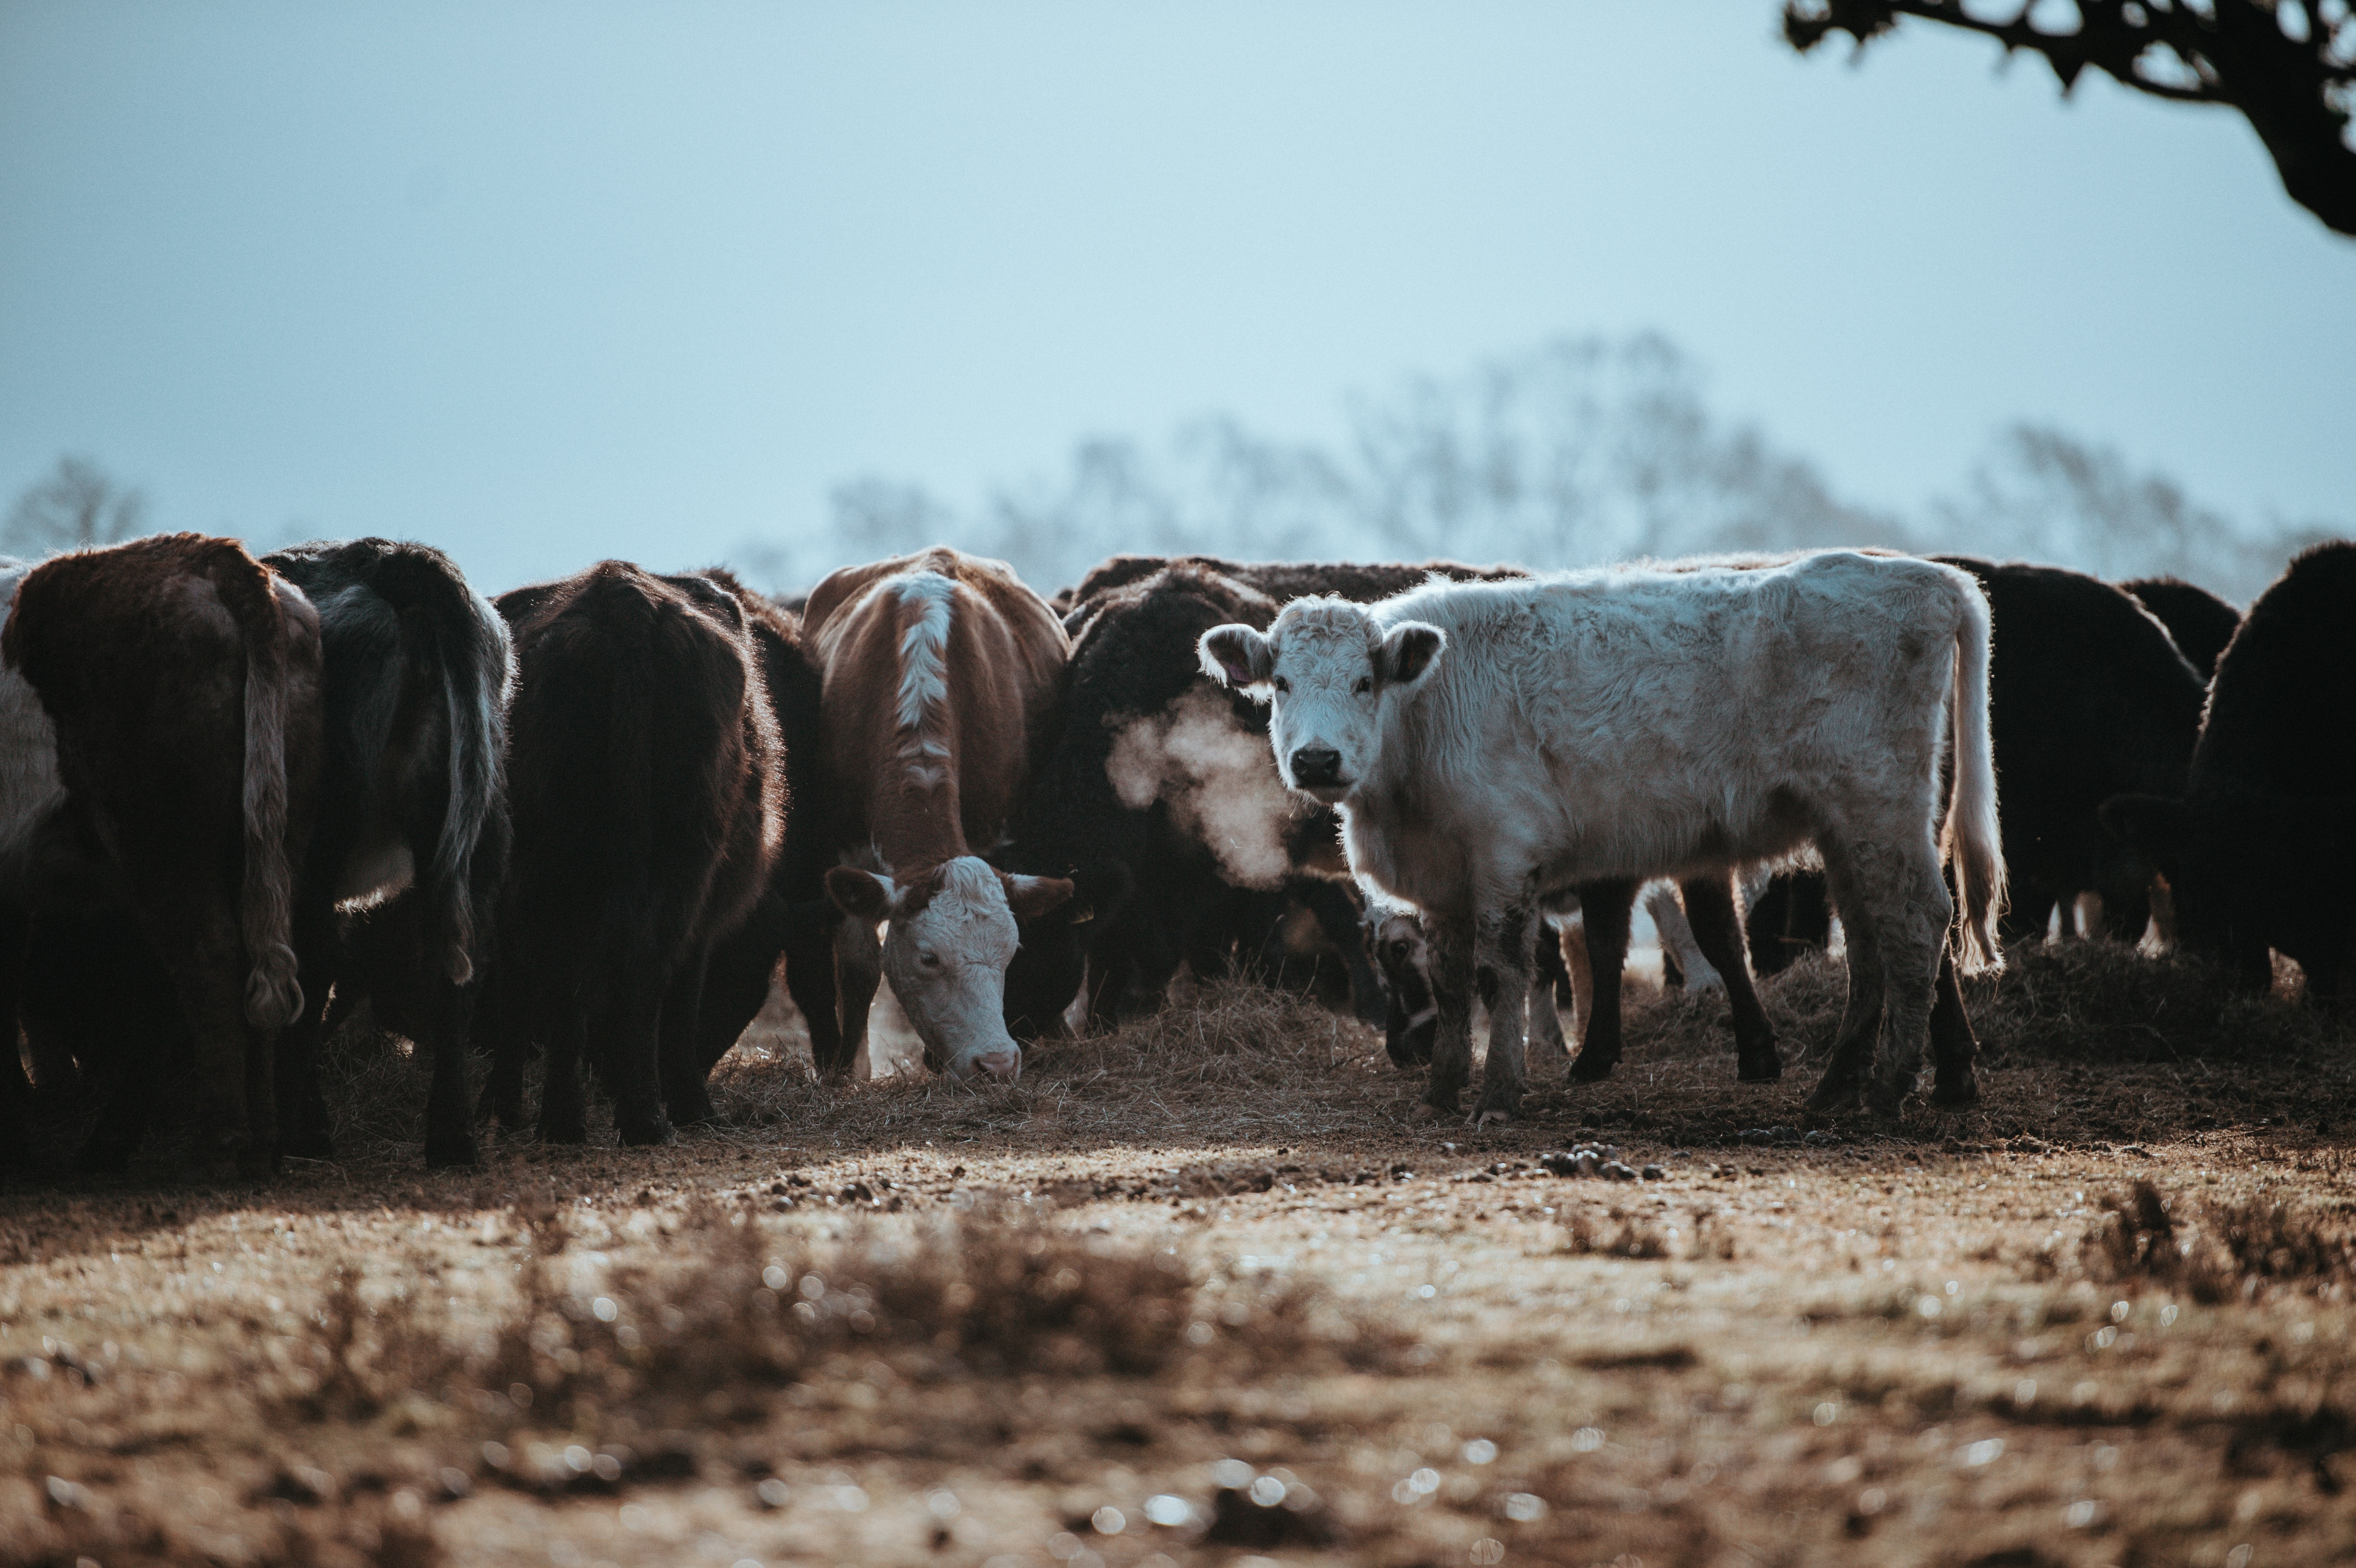 Forging a more sustainable path for animal farming